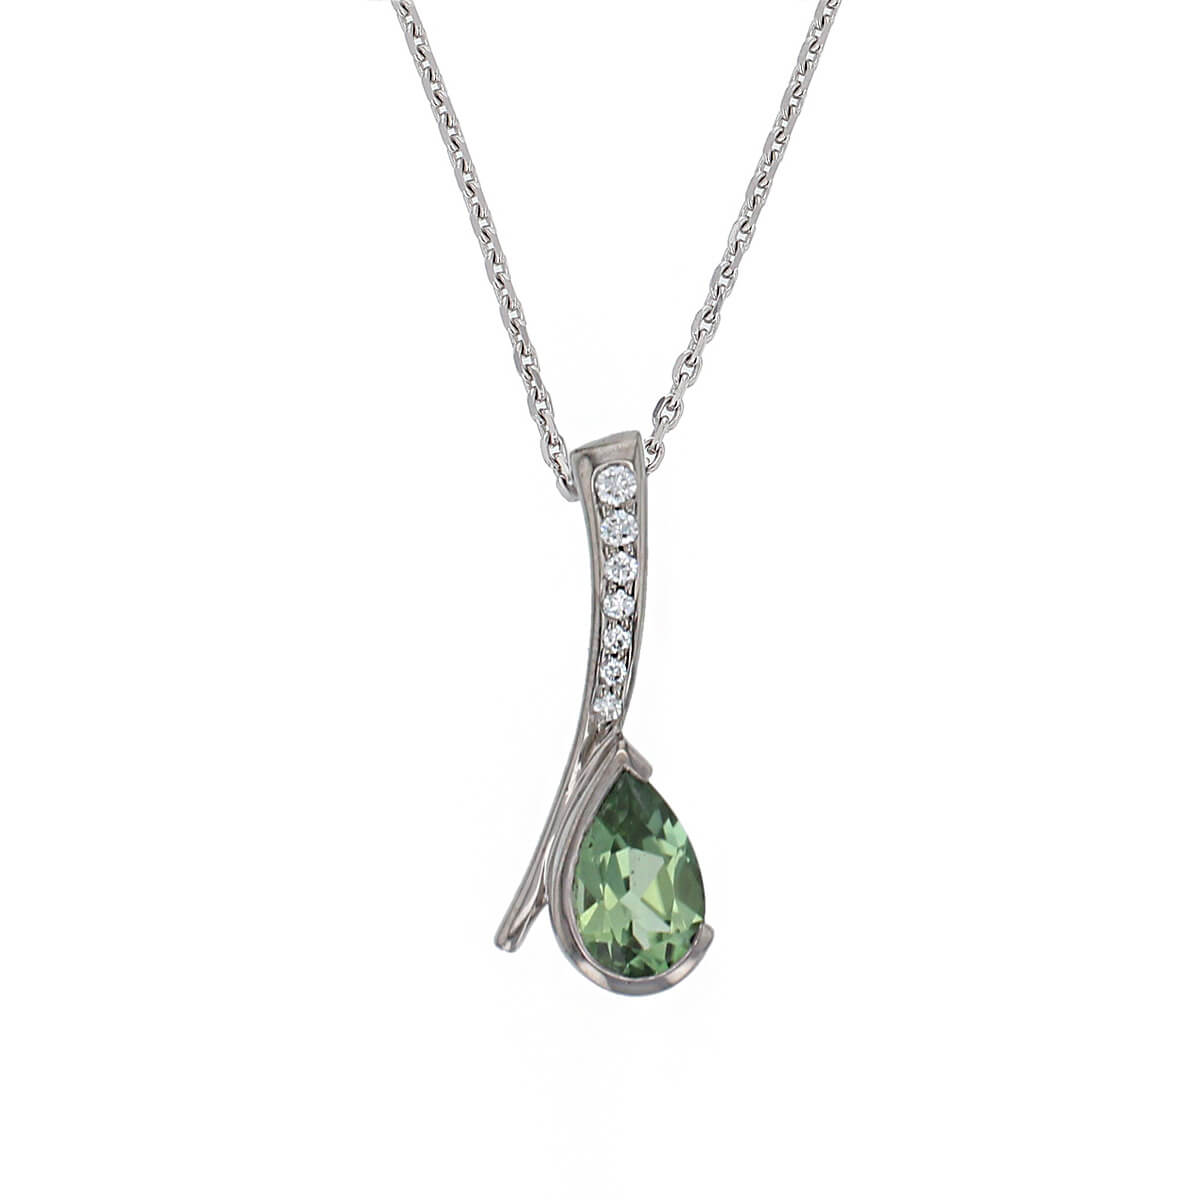 Faller pear cut mint green tourmaline gemstone & diamond 18ct white gold ladies pendant with chain, 18kt, designer, handmade by Faller, Derry/ Londonderry, hand crafted, precious tourmaline gem jewellery, jewelry